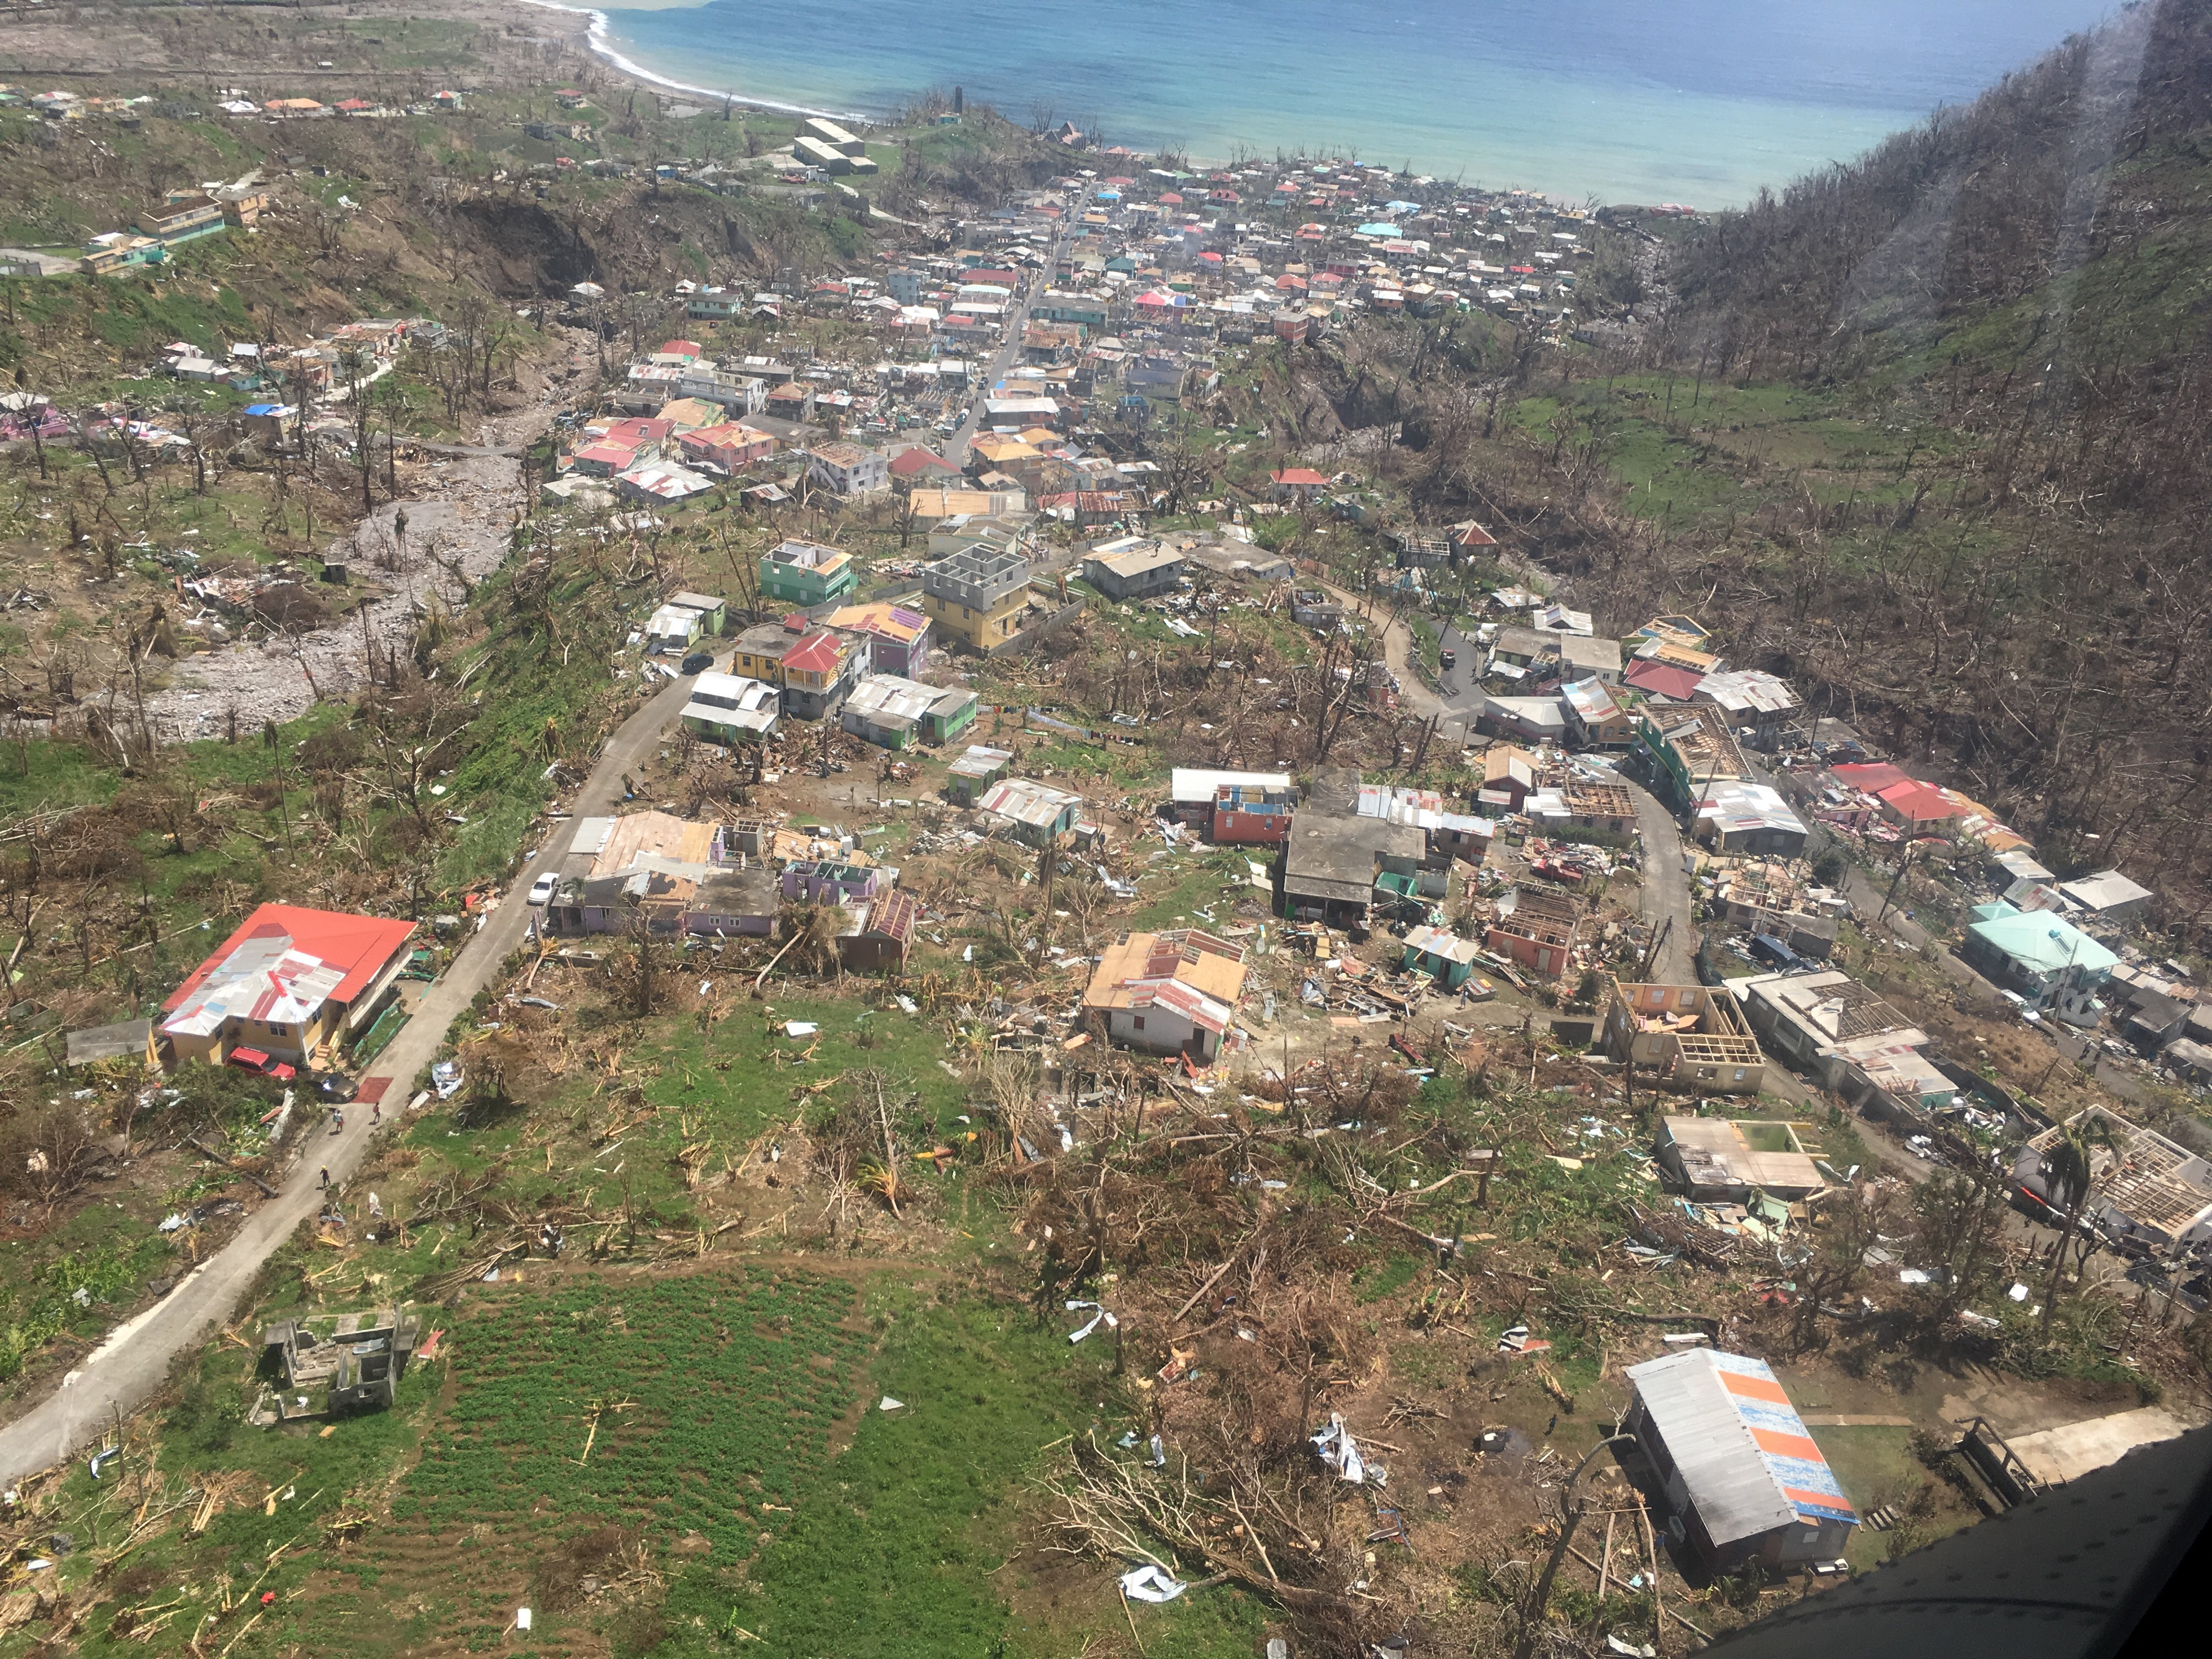 Hurricane Maria, a Category 5 storm, made landfall on the island of Dominica on September 18, 2017, causing widespread devastation.